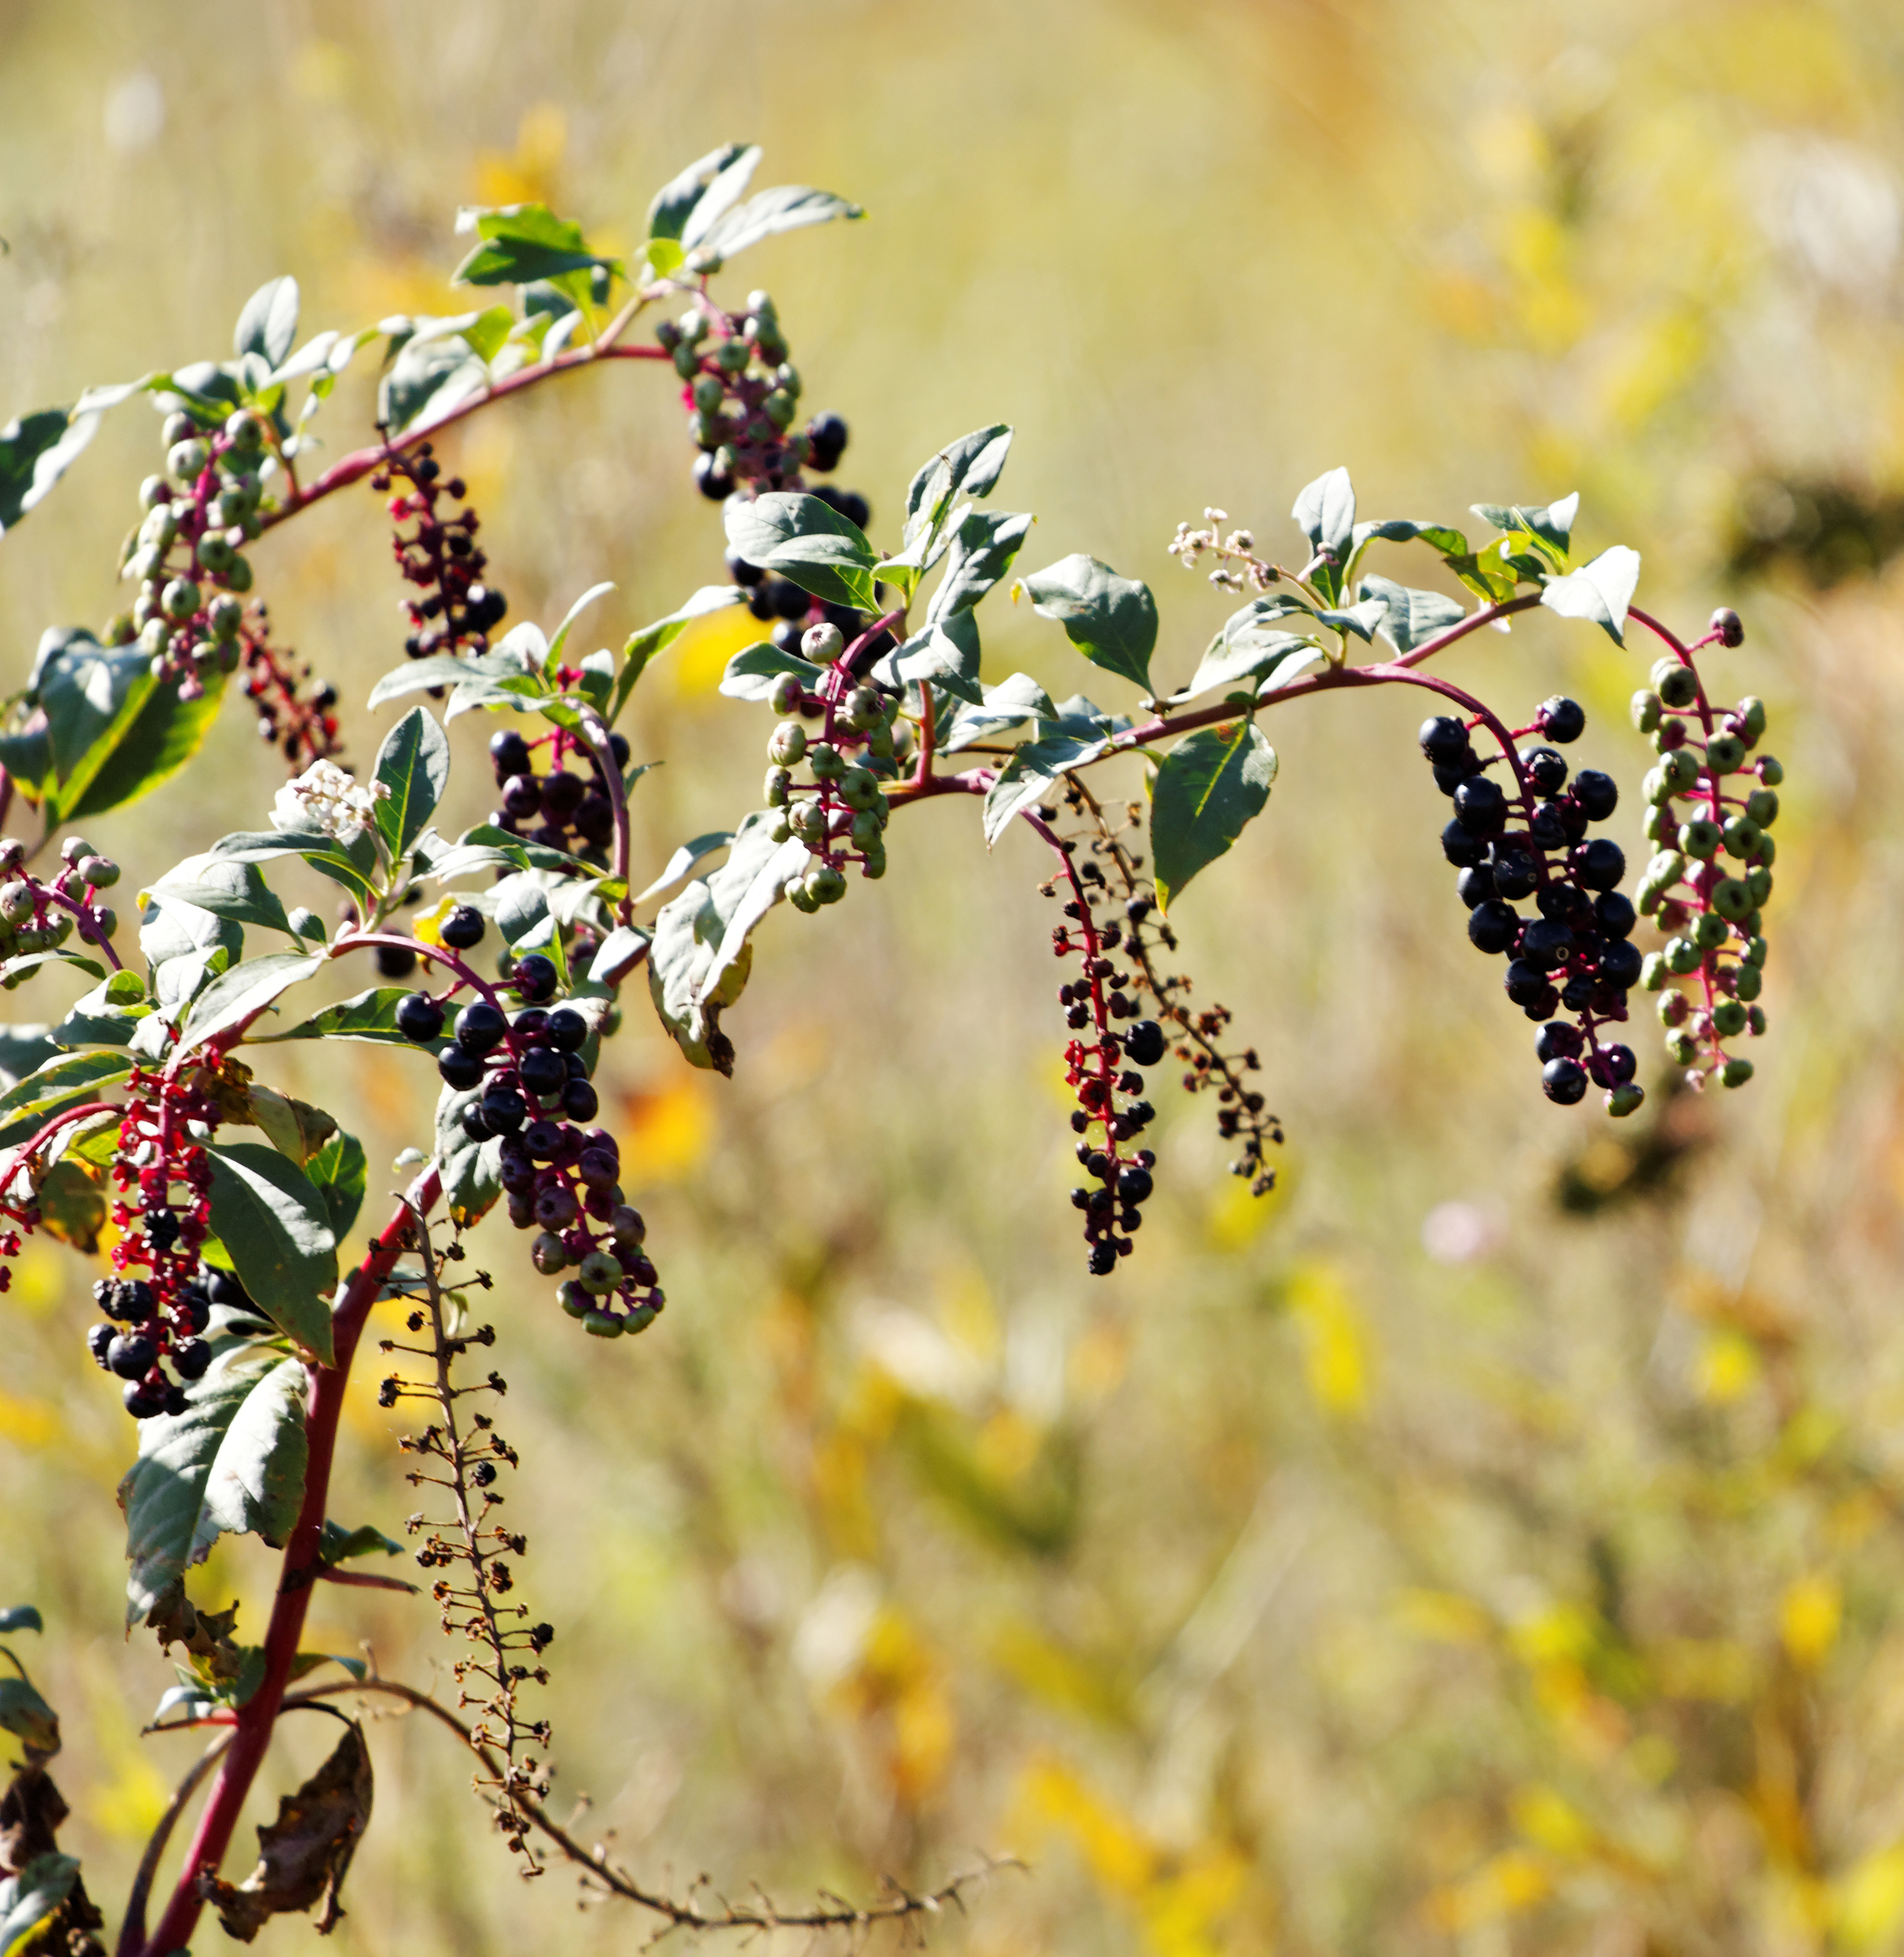 By Dennis Blythe (Pokeweed) [CC BY 2.0 (http://creativecommons.org/licenses/by/2.0)], via Wikimedia Commons